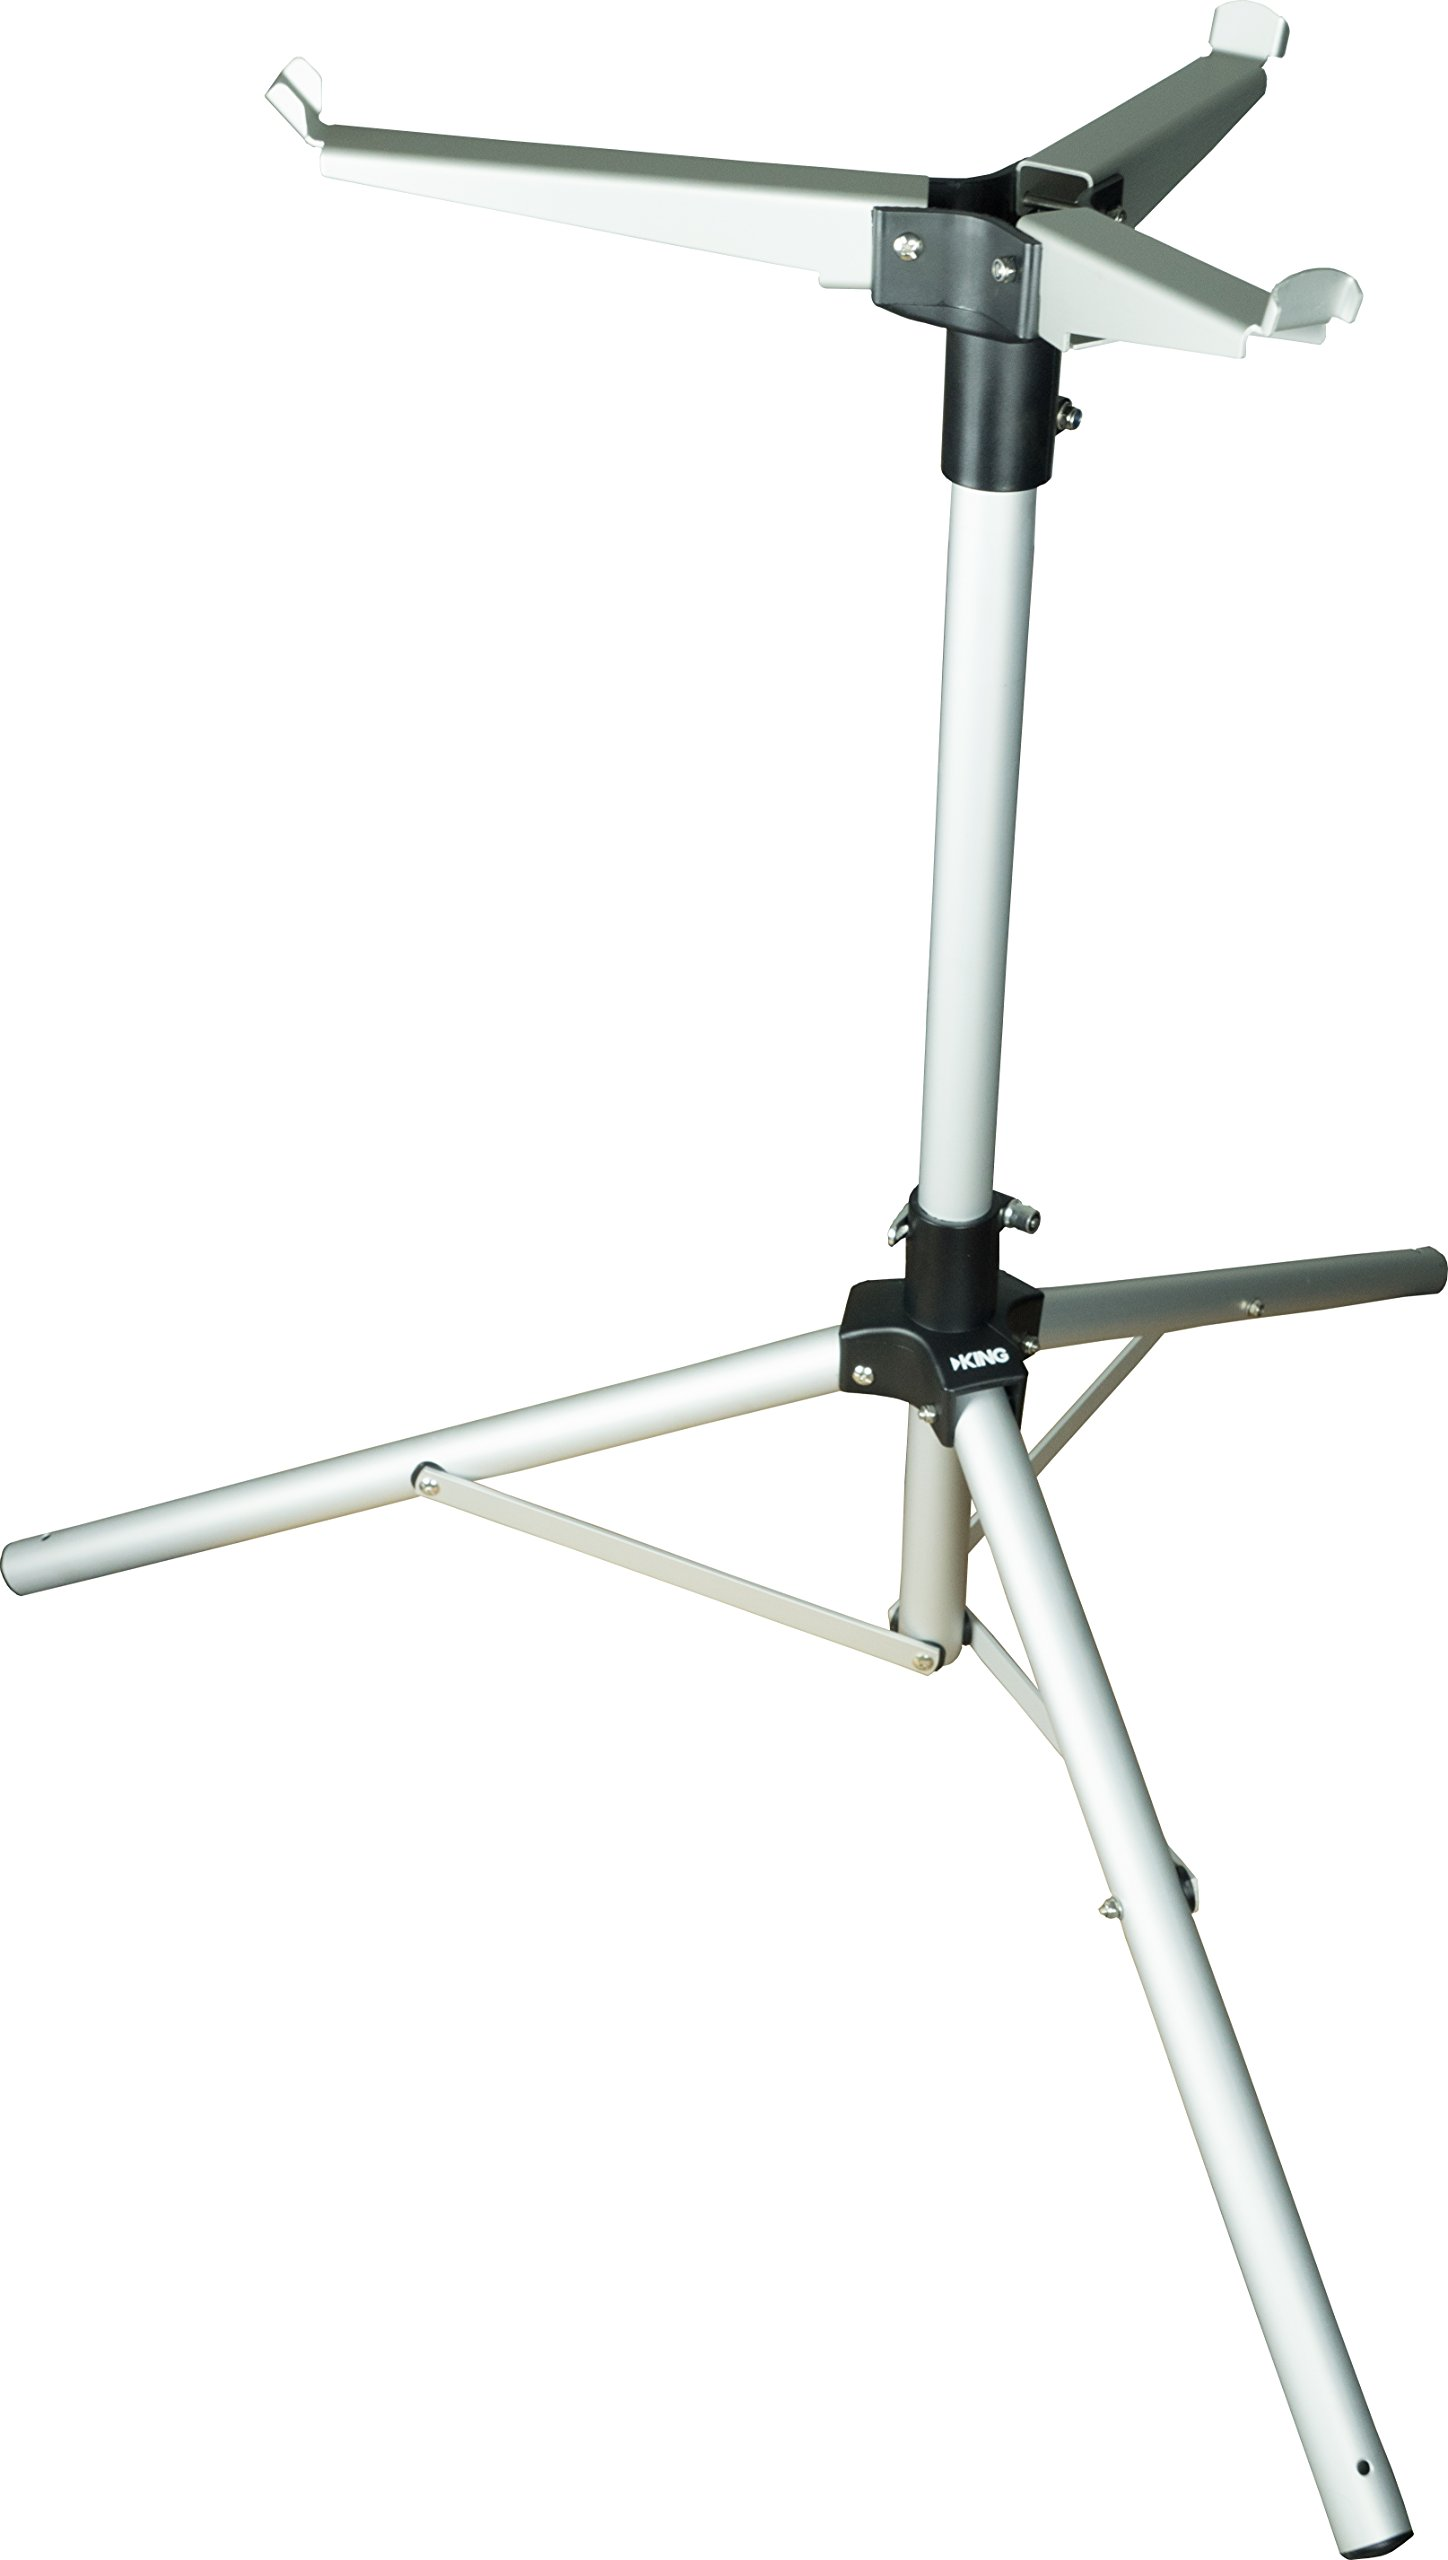 KING TR1000 Tripod Mount for Tailgater (VQ4400 & VQ4500) and Quest (VQ4100) Portable Satellite Antennas